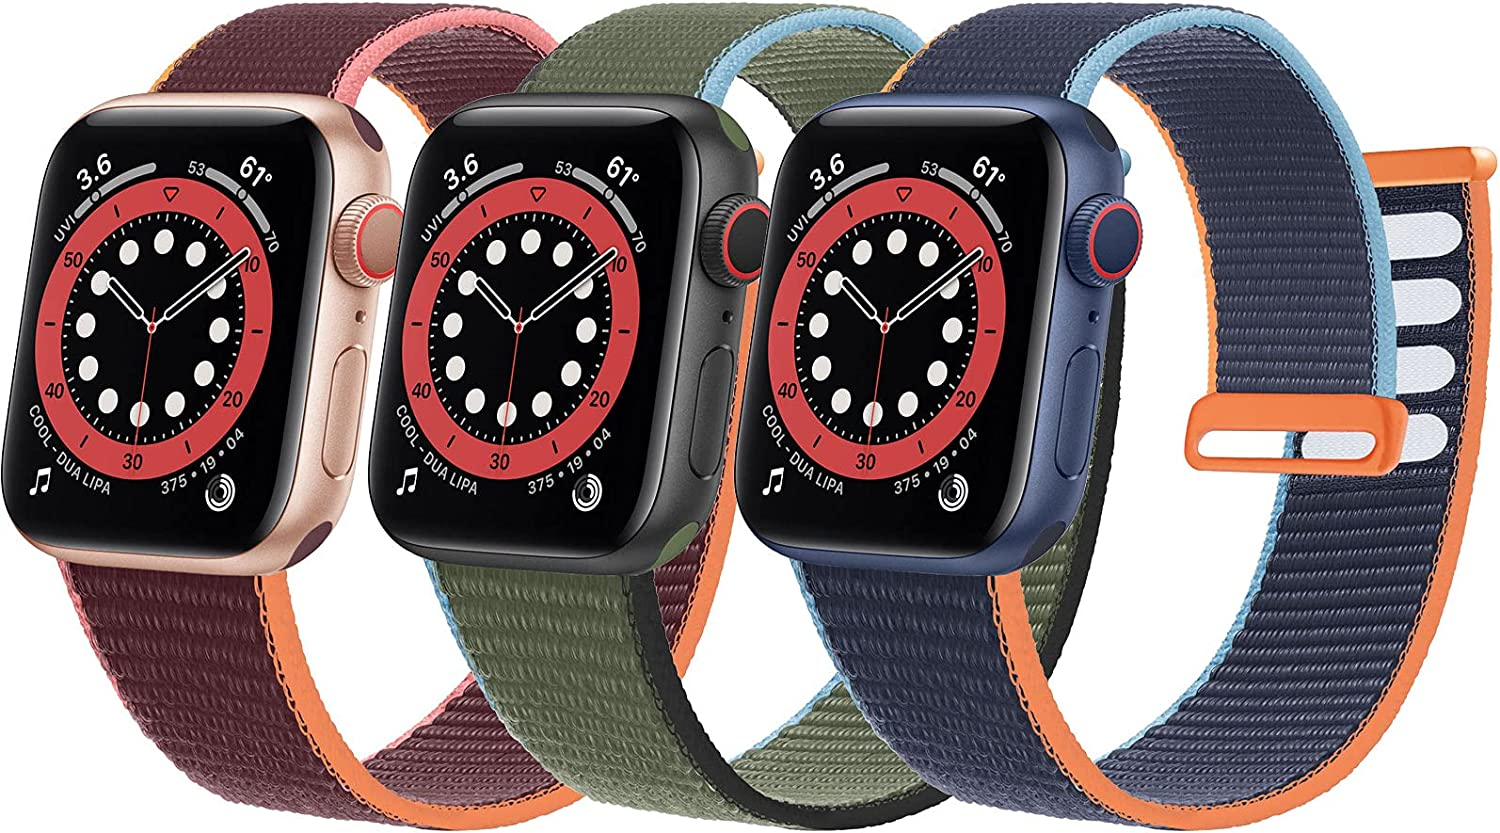 Bifeiyo 3 Pack Nylon Bands Compatible with Apple Watch Band 41mm 40mm 38mm Women Men, Adjustable Sport Replacement Strap for iWatch Series 7 6 5 4 3 2 1 SE(Plum/Inverness Green/Deep Navy Blue)